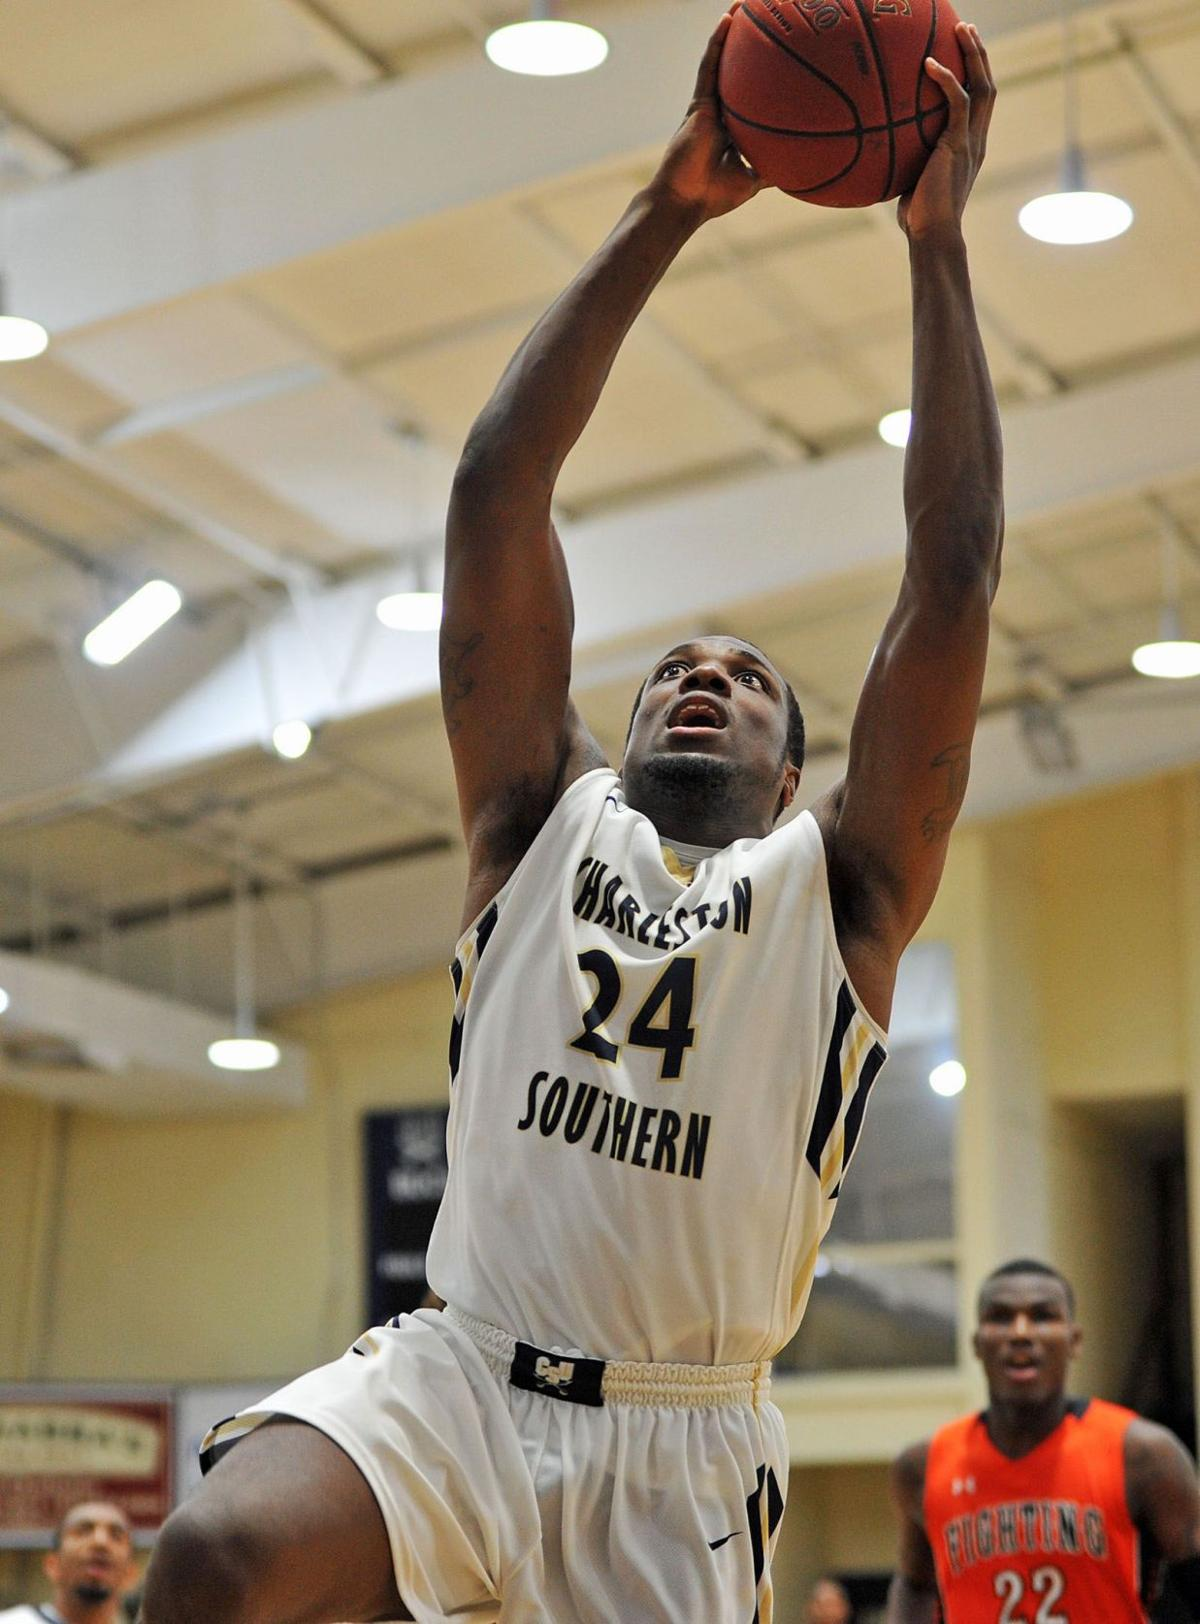 Bucs rally late to edge Camels